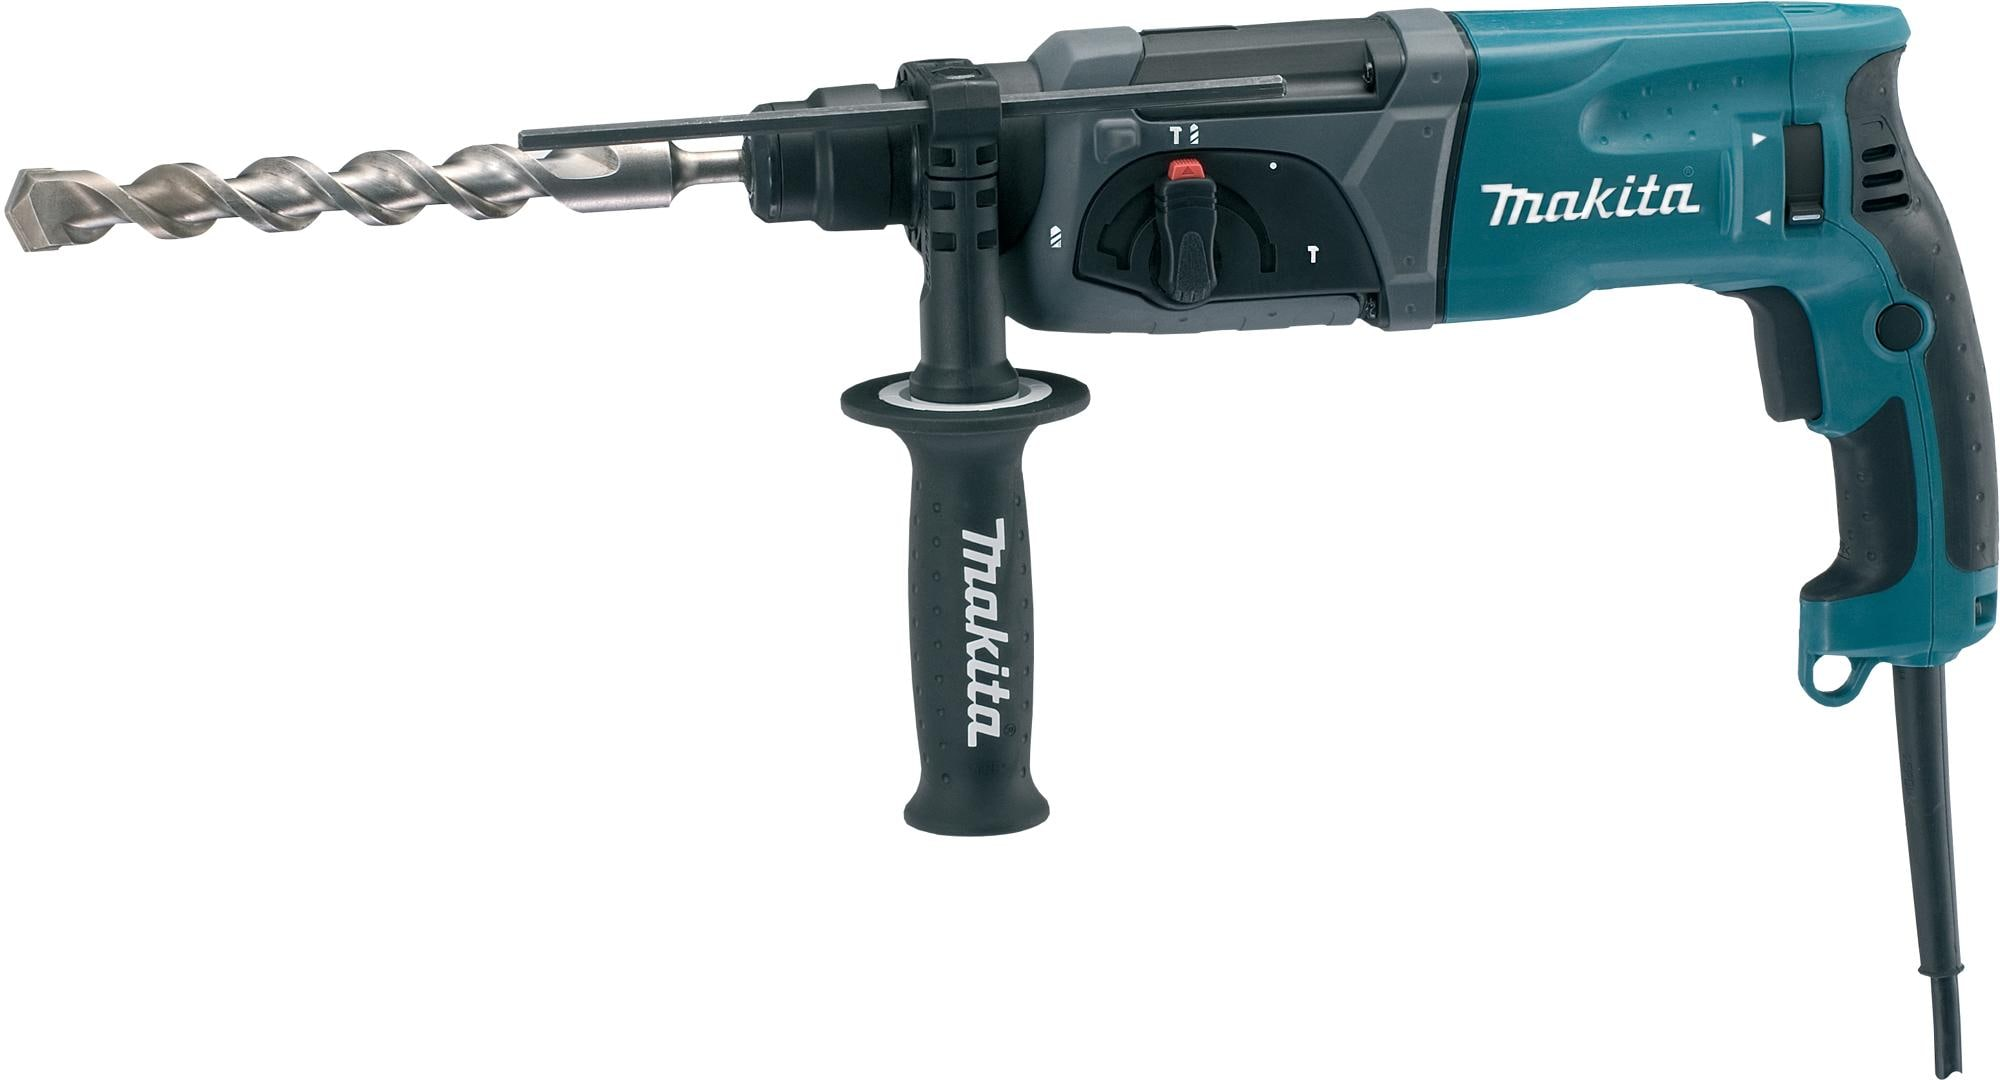 makita hr2470 bohrhammer sds plus 780 w inkl transportkoffer von makita bei elektroshop wagner. Black Bedroom Furniture Sets. Home Design Ideas